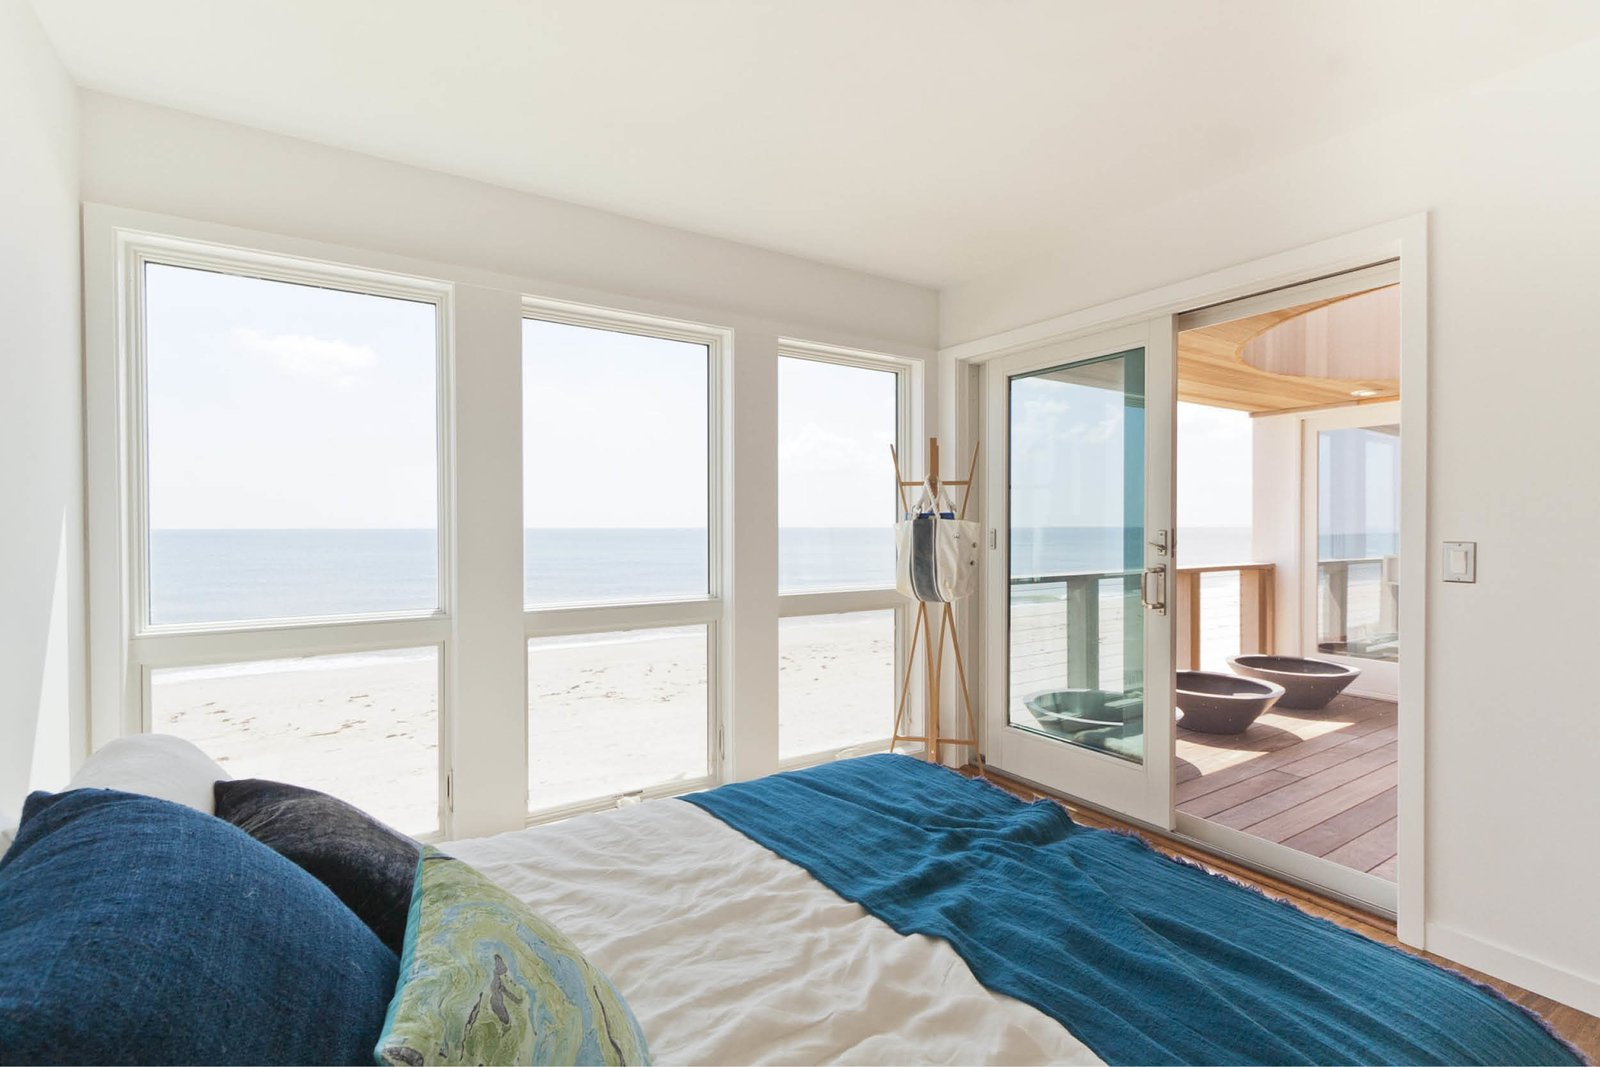 Bedroom, Medium Hardwood Floor, and Bed Guest bedroom  Dune Road Beach House by Resolution: 4 Architecture